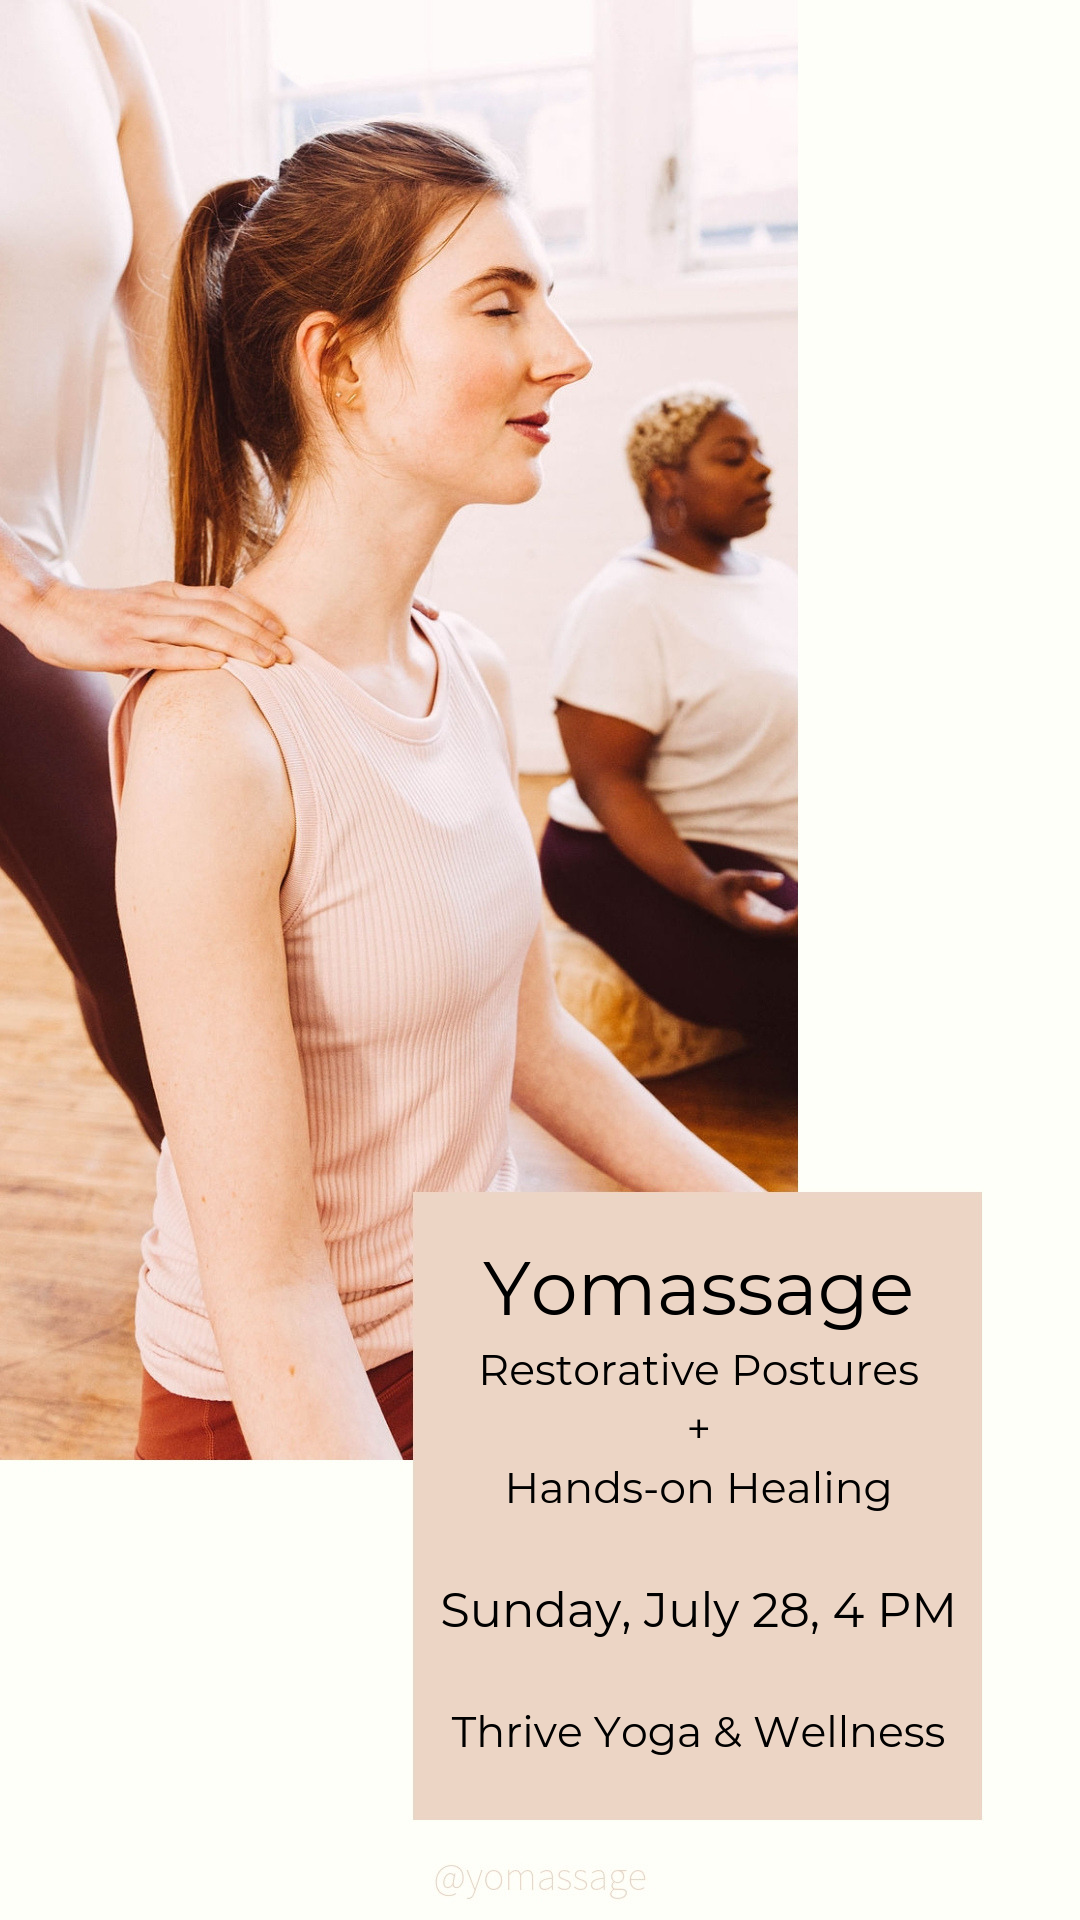 Yomassage Restorative Posture + Hands-on Healing Sunday, July 28, 4 PM Thrive Yoga & Wellness[5688].png